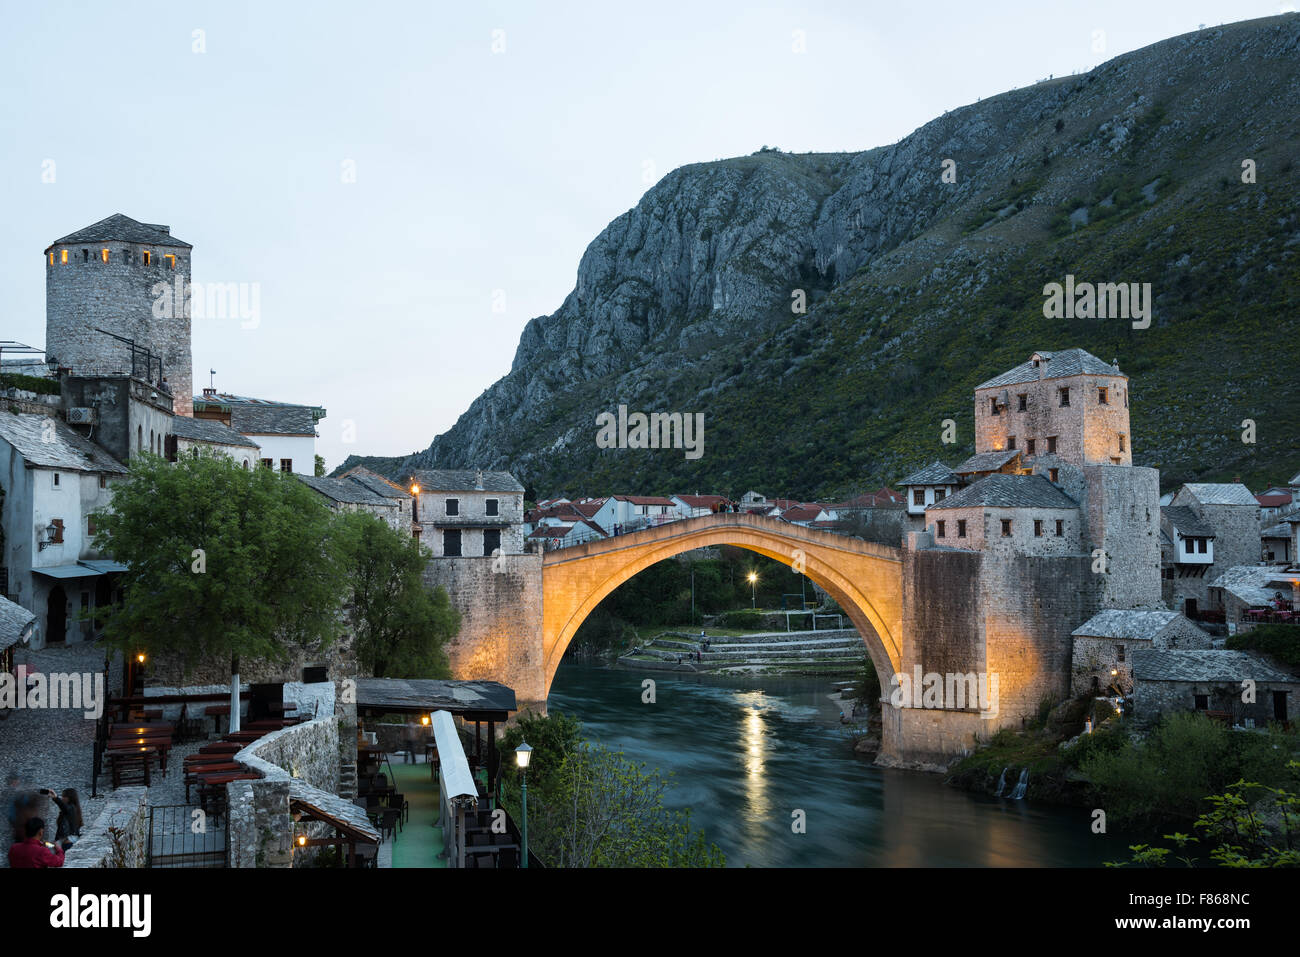 The Old Bridge in Mostar at sunset, Bosnia and Herzegovina - Stock Image